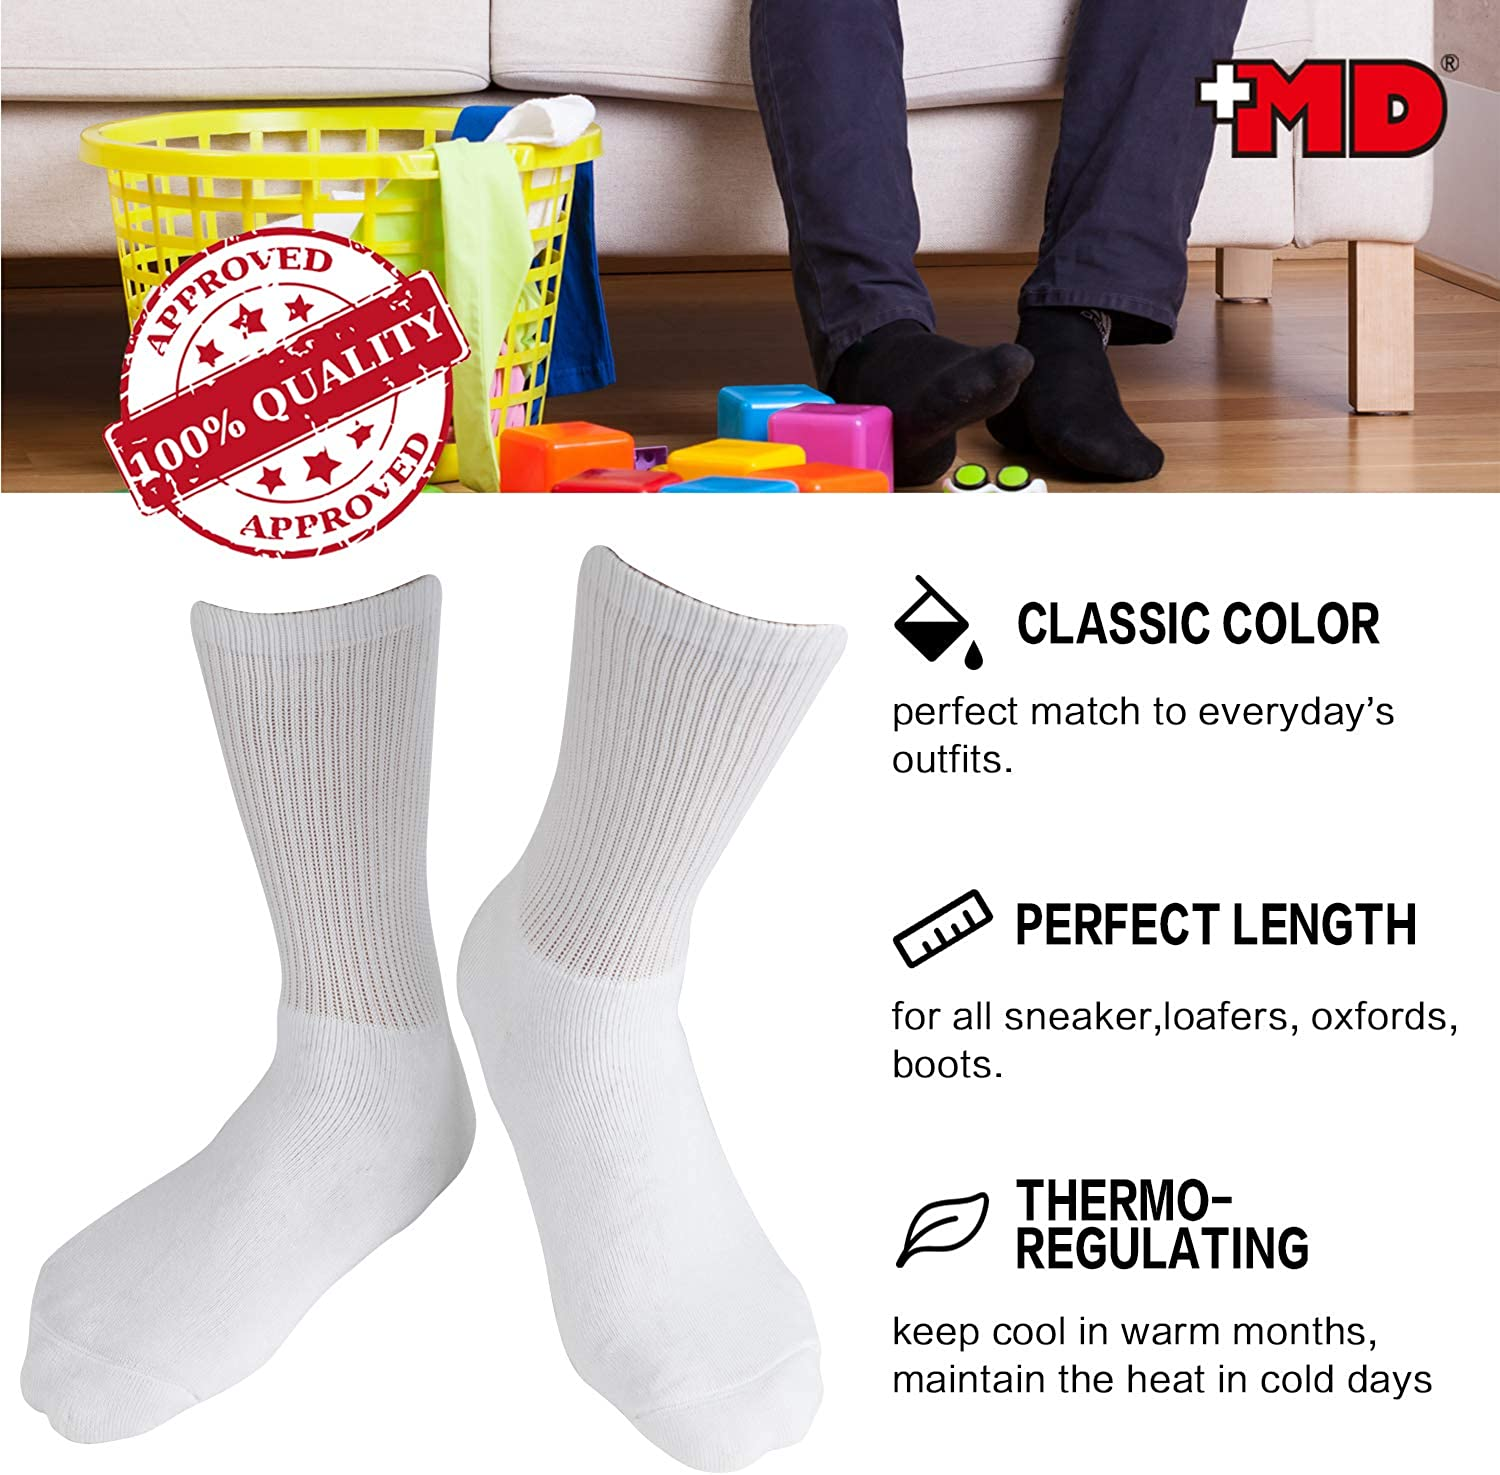 +MD 6 Pack Mens Bamboo Crew Socks Extra Heavy Full Cushion Work Socks Moisture Wicking Hiking Trekking Sports Casual Socks